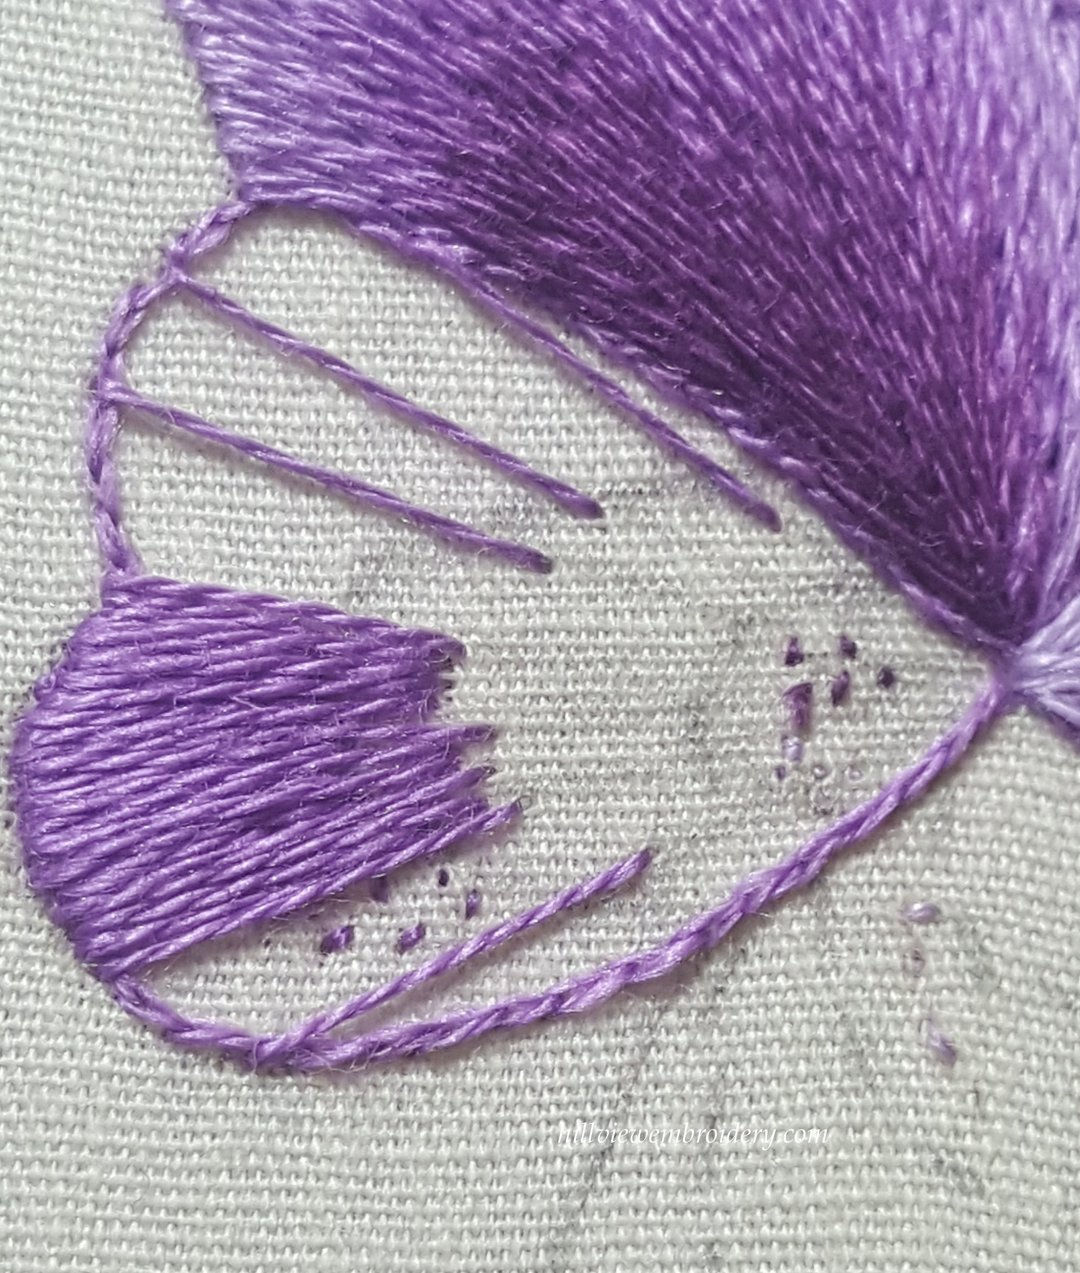 A work in progress image of a silk shaded petal